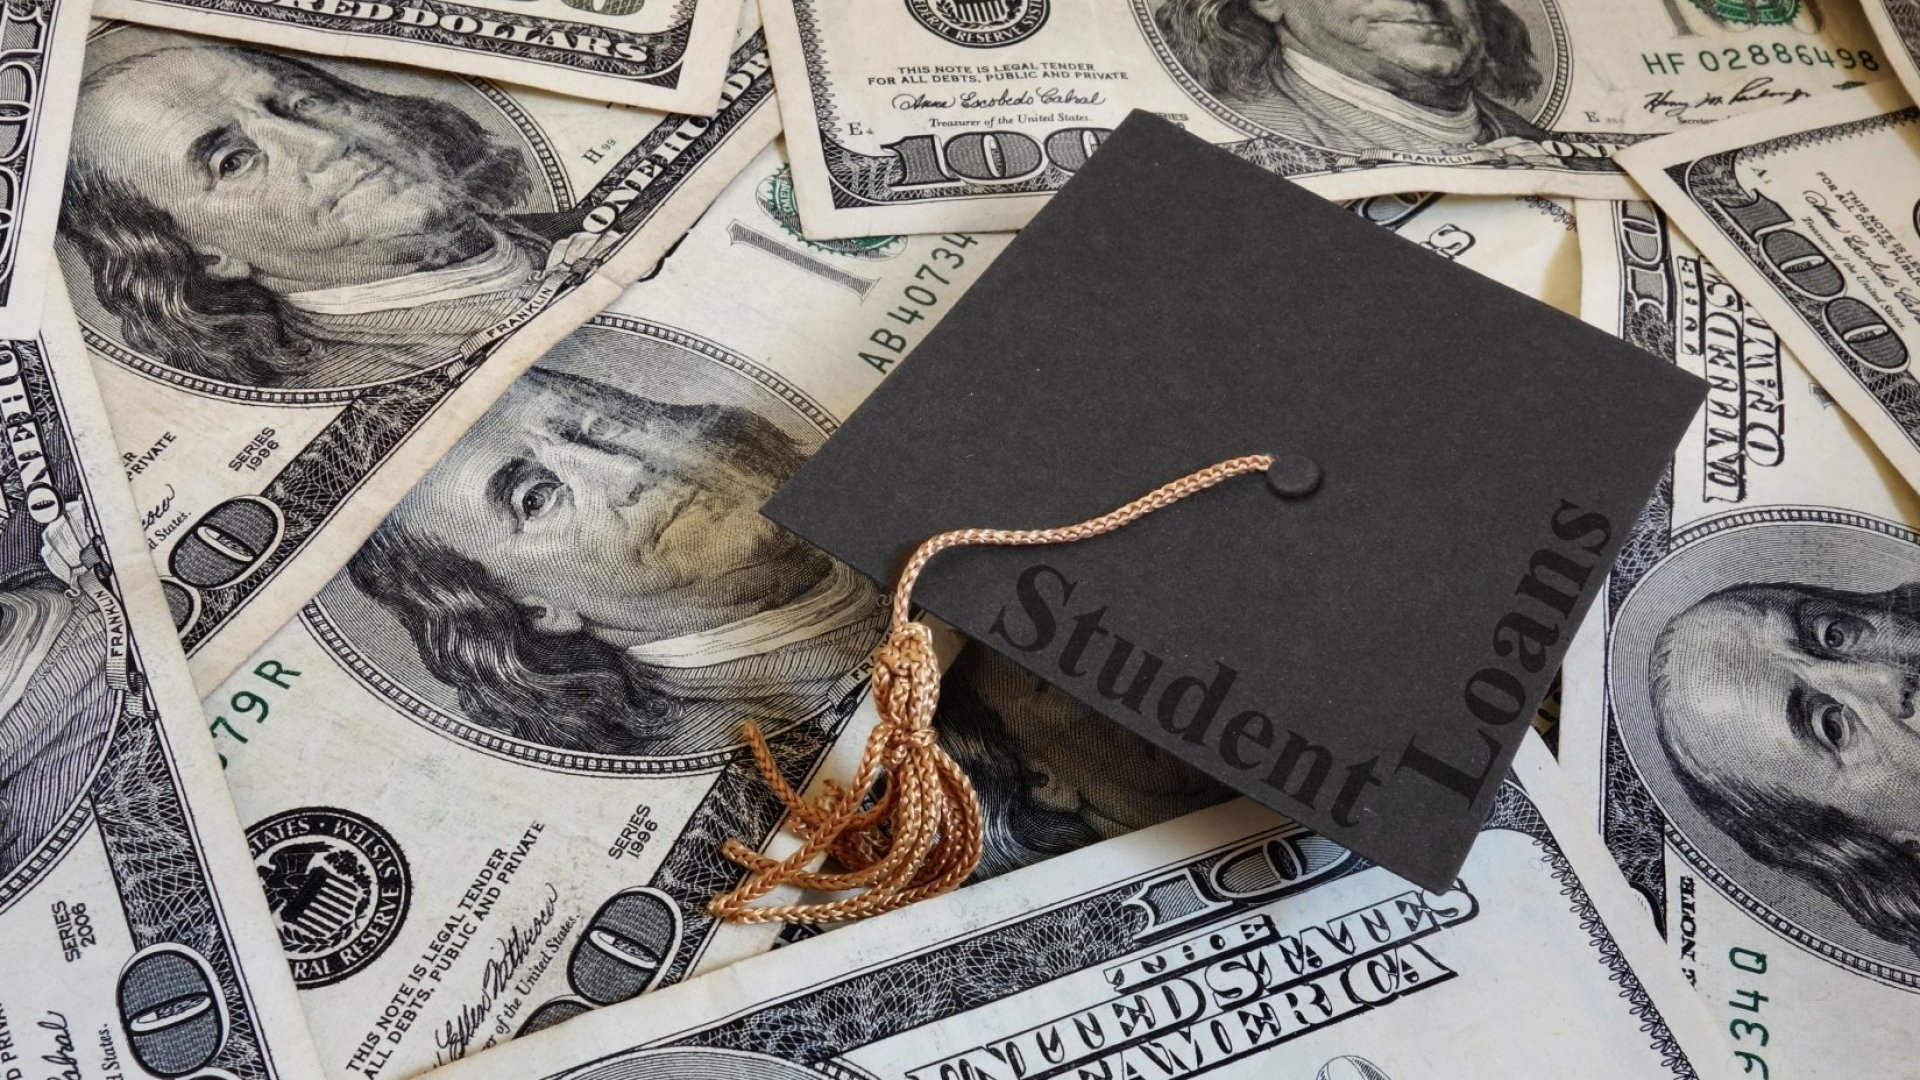 63 Percent of Millennials Have More Than $10,000 in Student Debt. They'll Be Paying for Decades